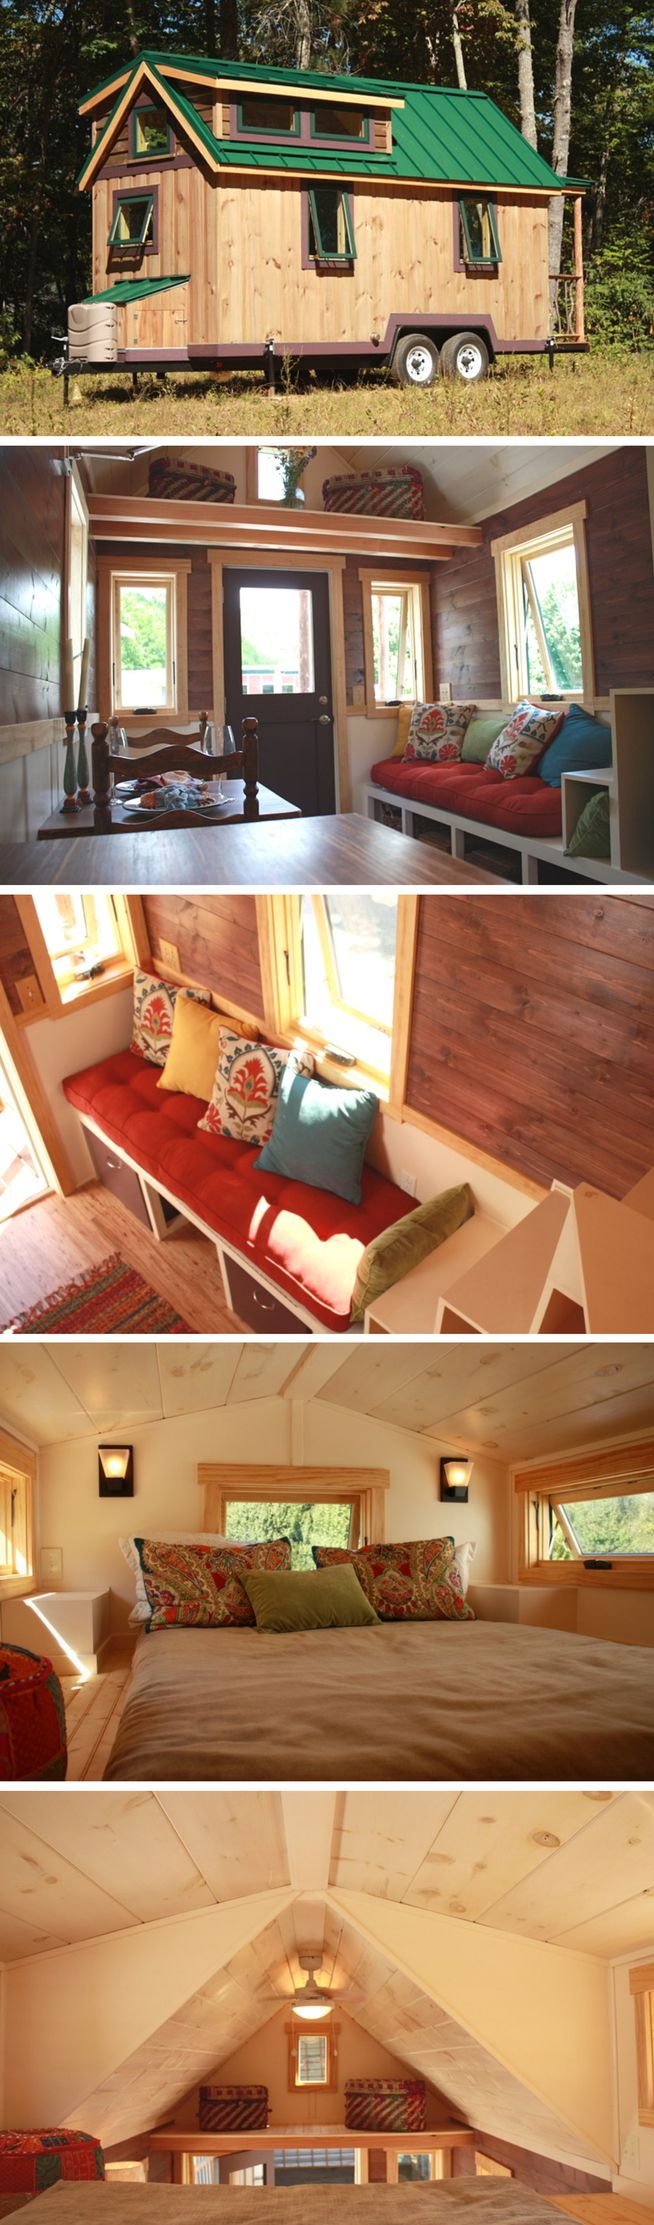 201 best TINY HOME IDEAS images on Pinterest   Cottage, Small ...